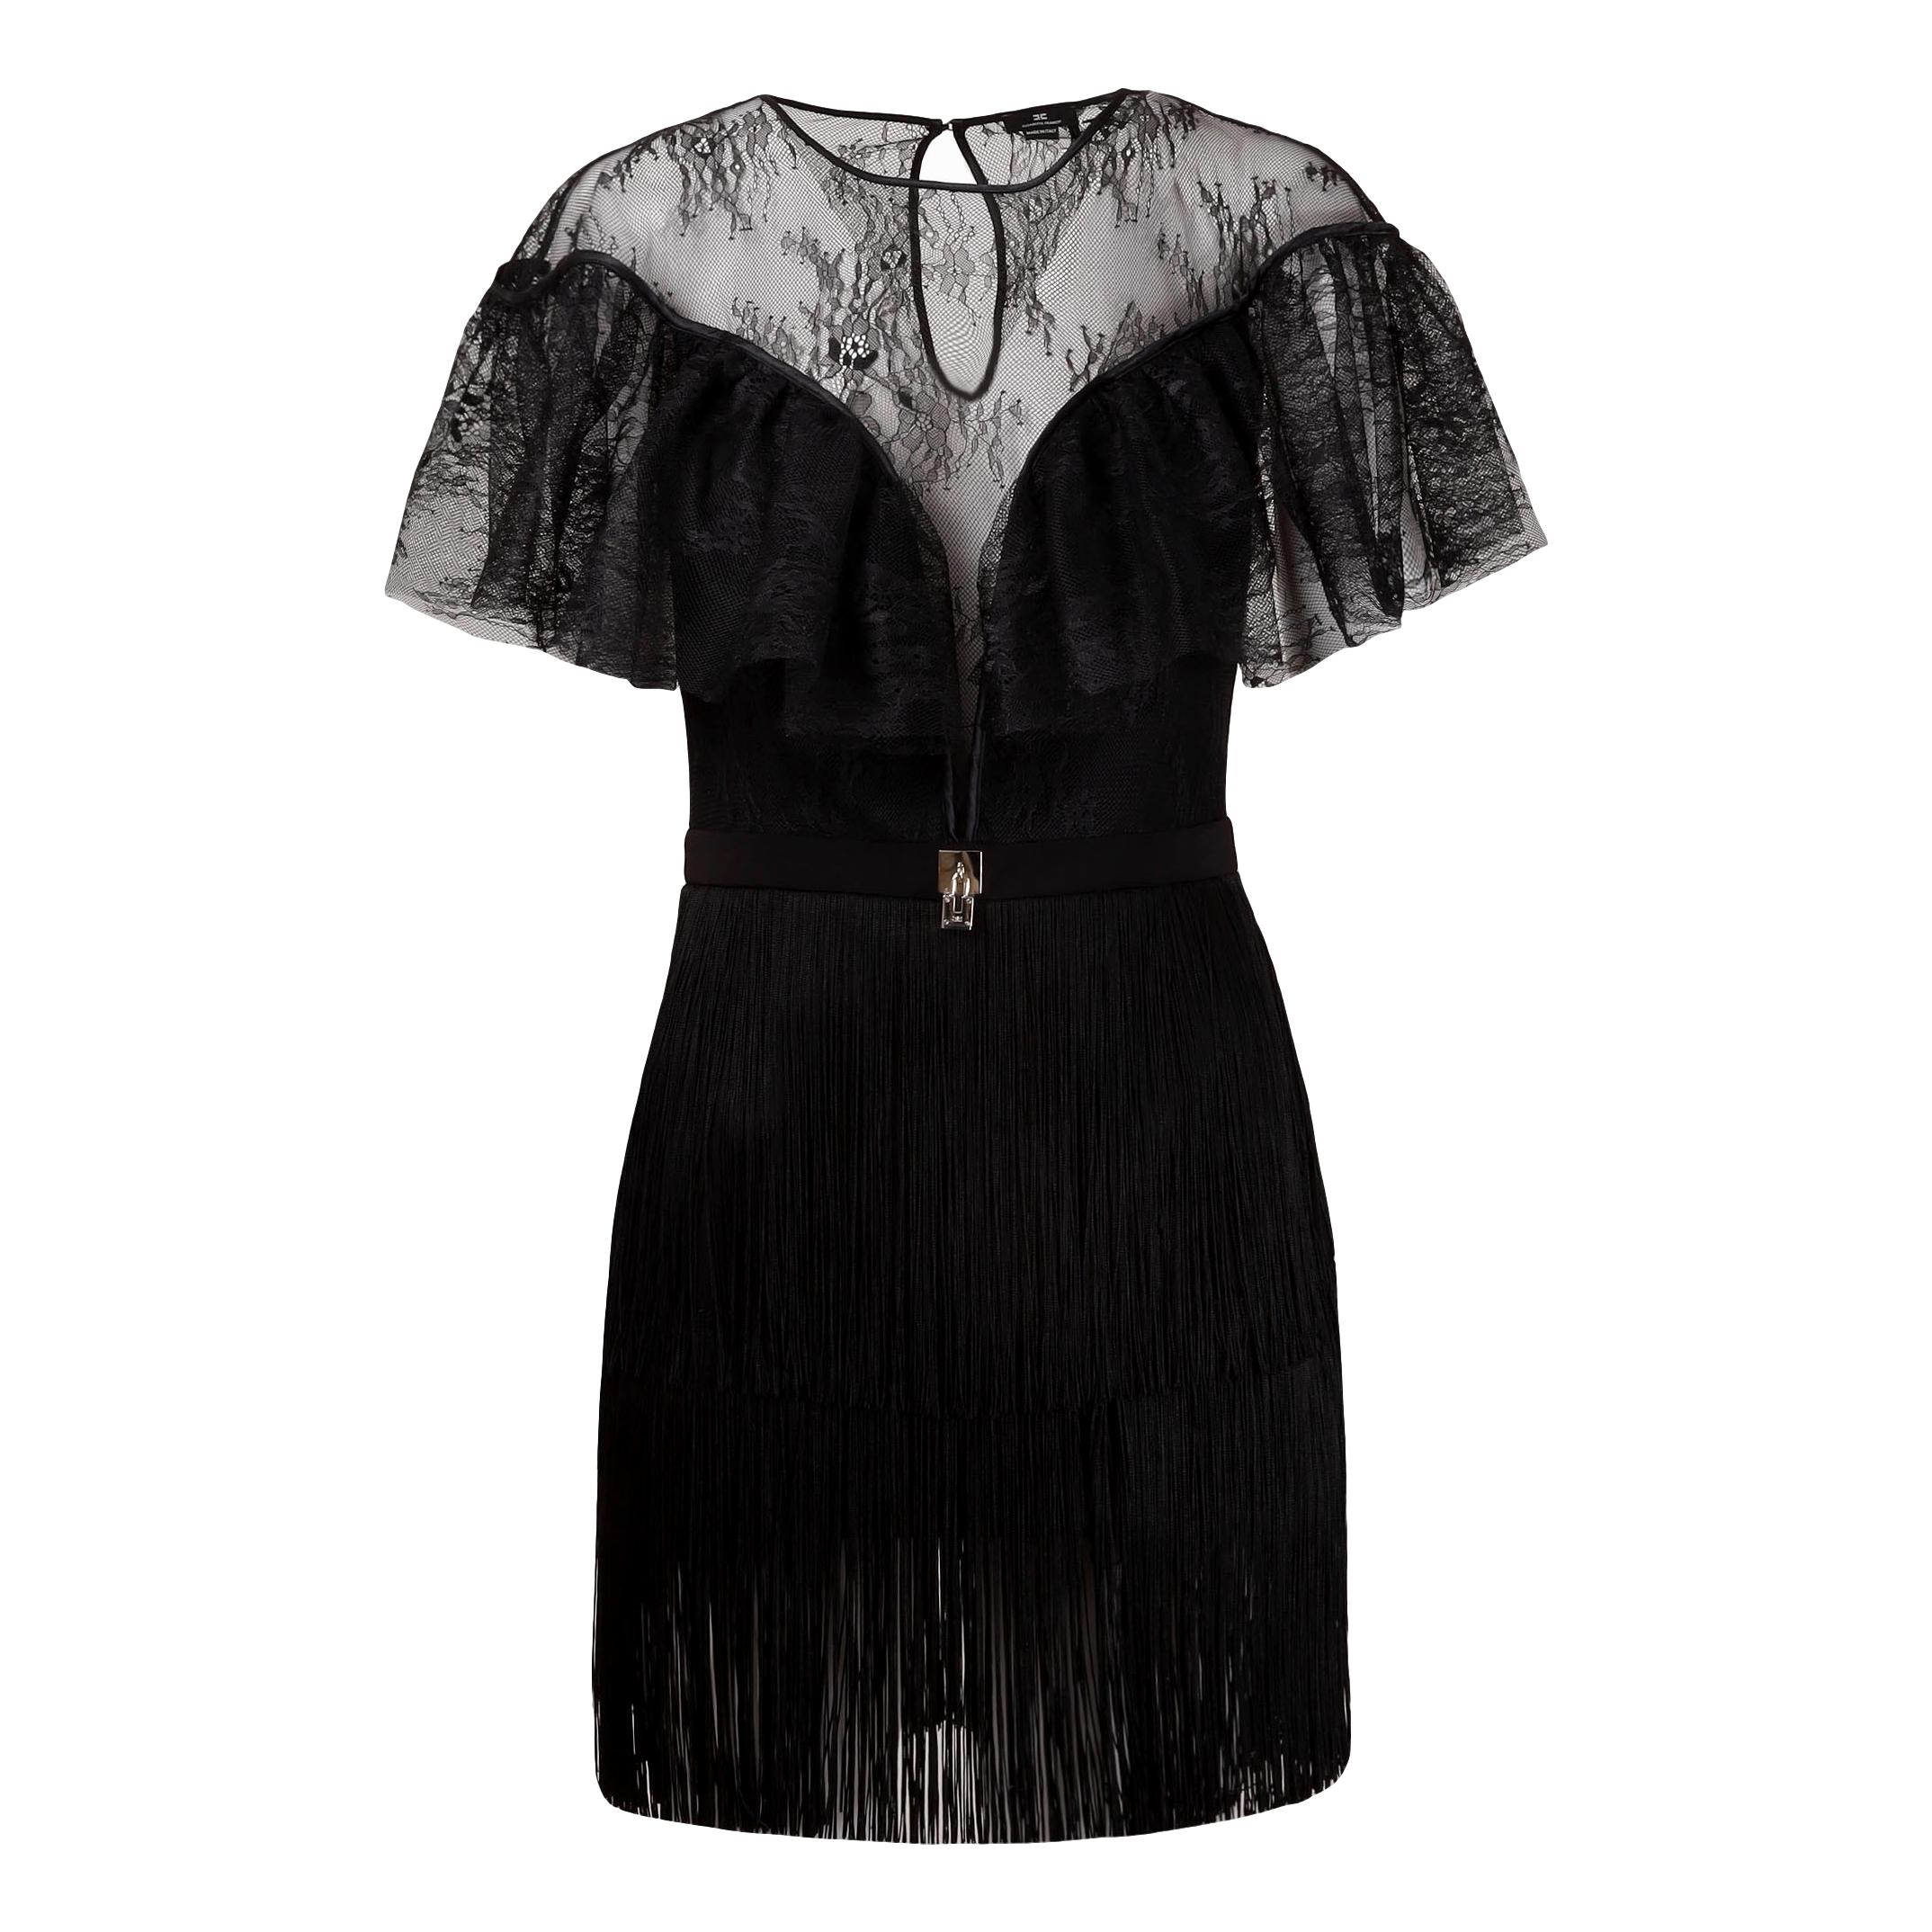 Mini dress in sheer lace fabric ELISABETTA FRANCHI |  | AB03311E2110